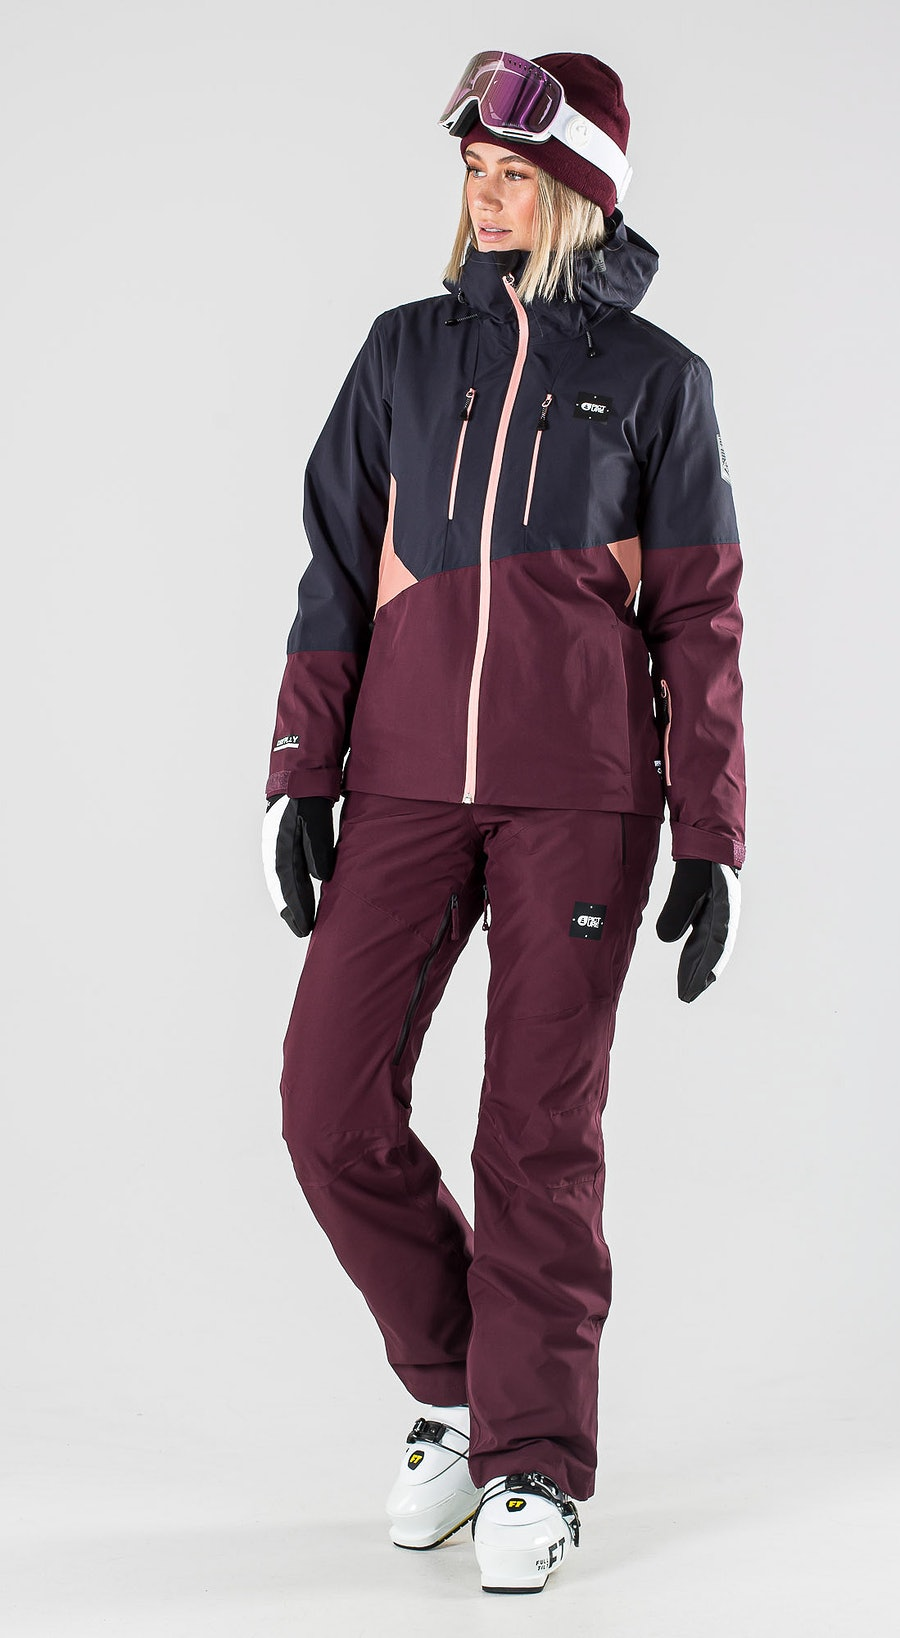 Picture Seen Dark Blue Ski Clothing Multi